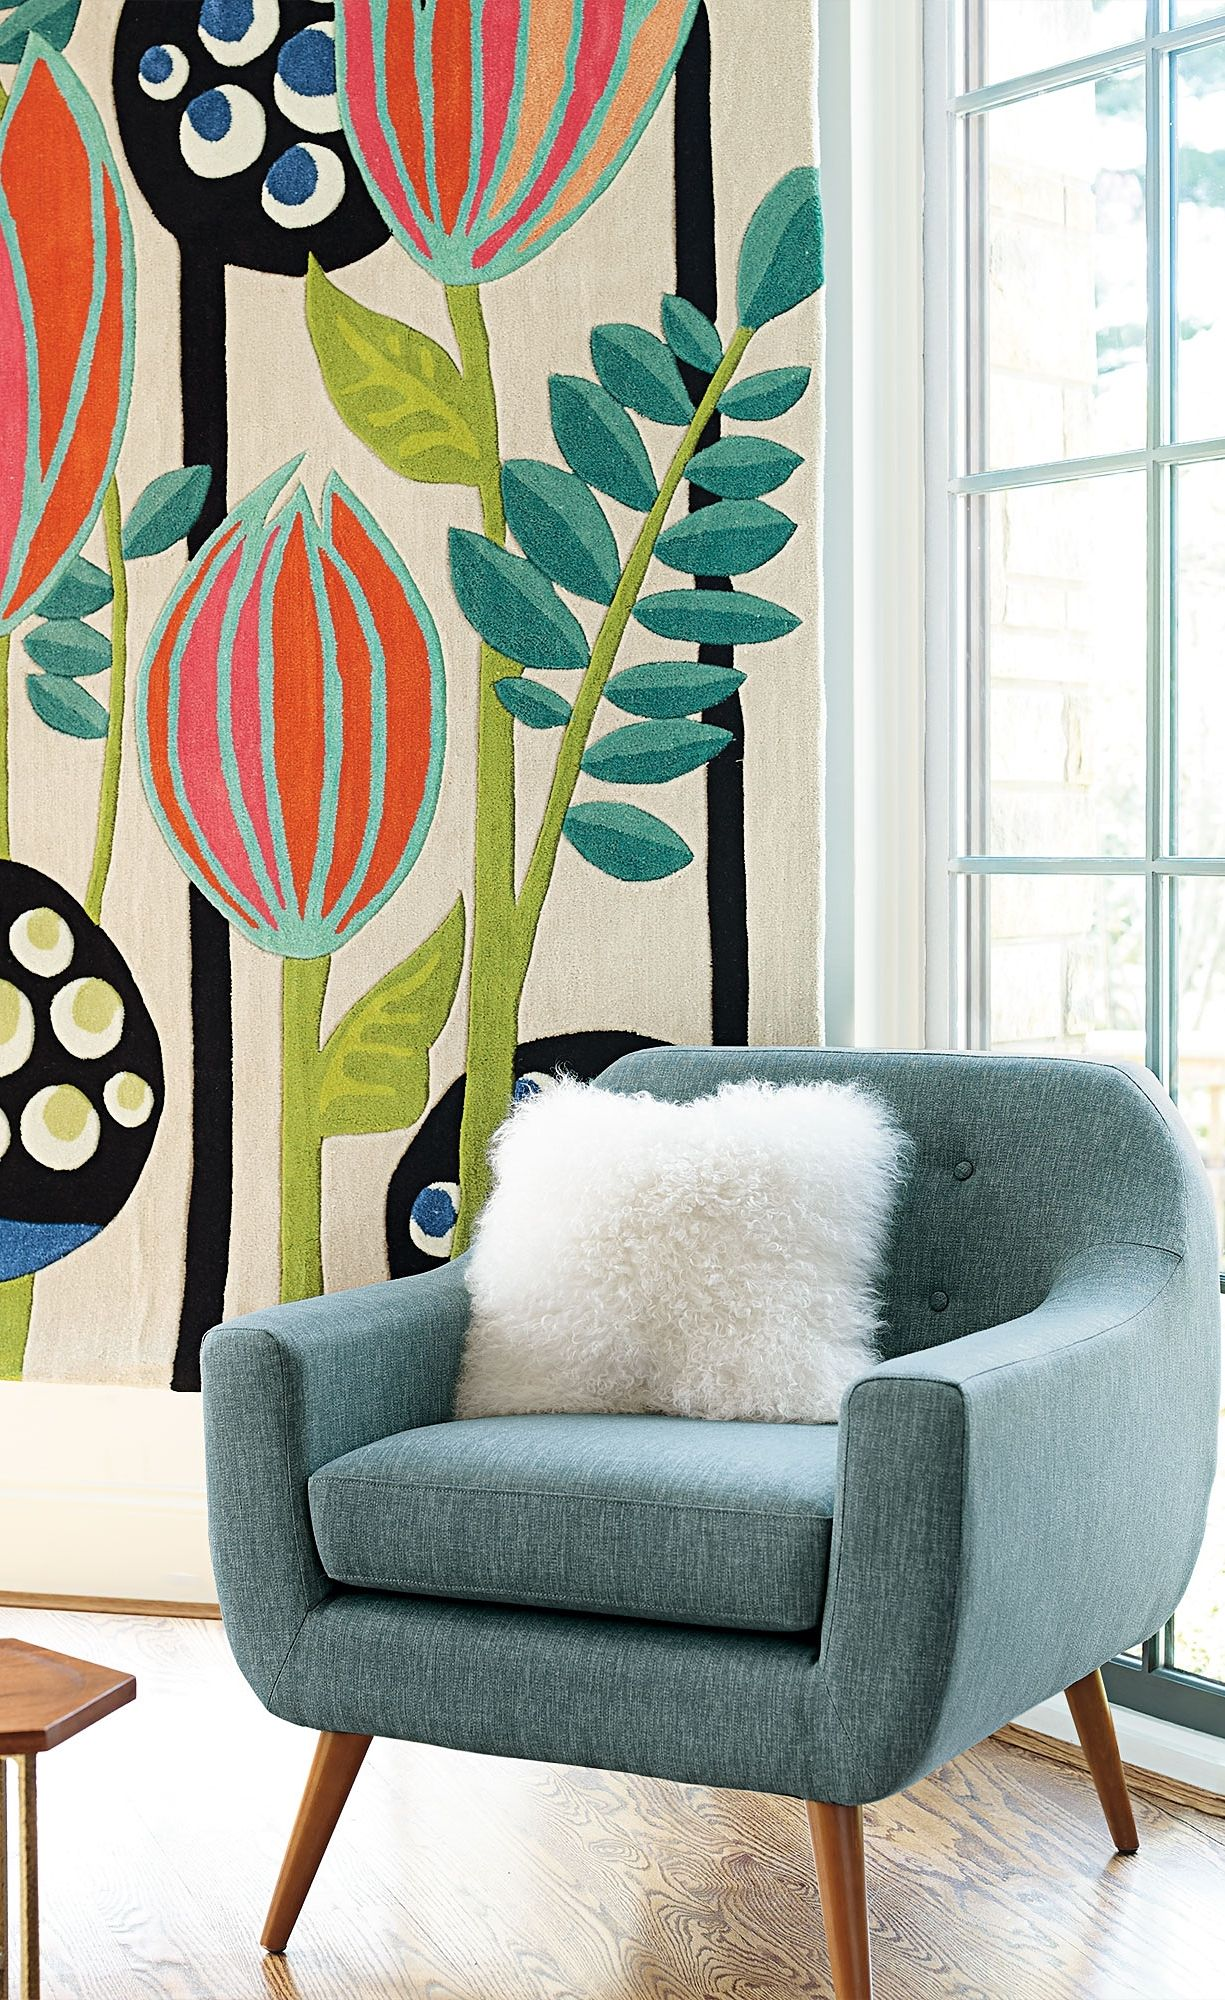 5 Living Room Color Combinations That Will Bring Joy to Your Home_1 room color combinations 5 Living Room Color Combinations That Will Bring Joy to Your Home 5 Living Room Color Combinations That Will Bring Joy to Your Home 3